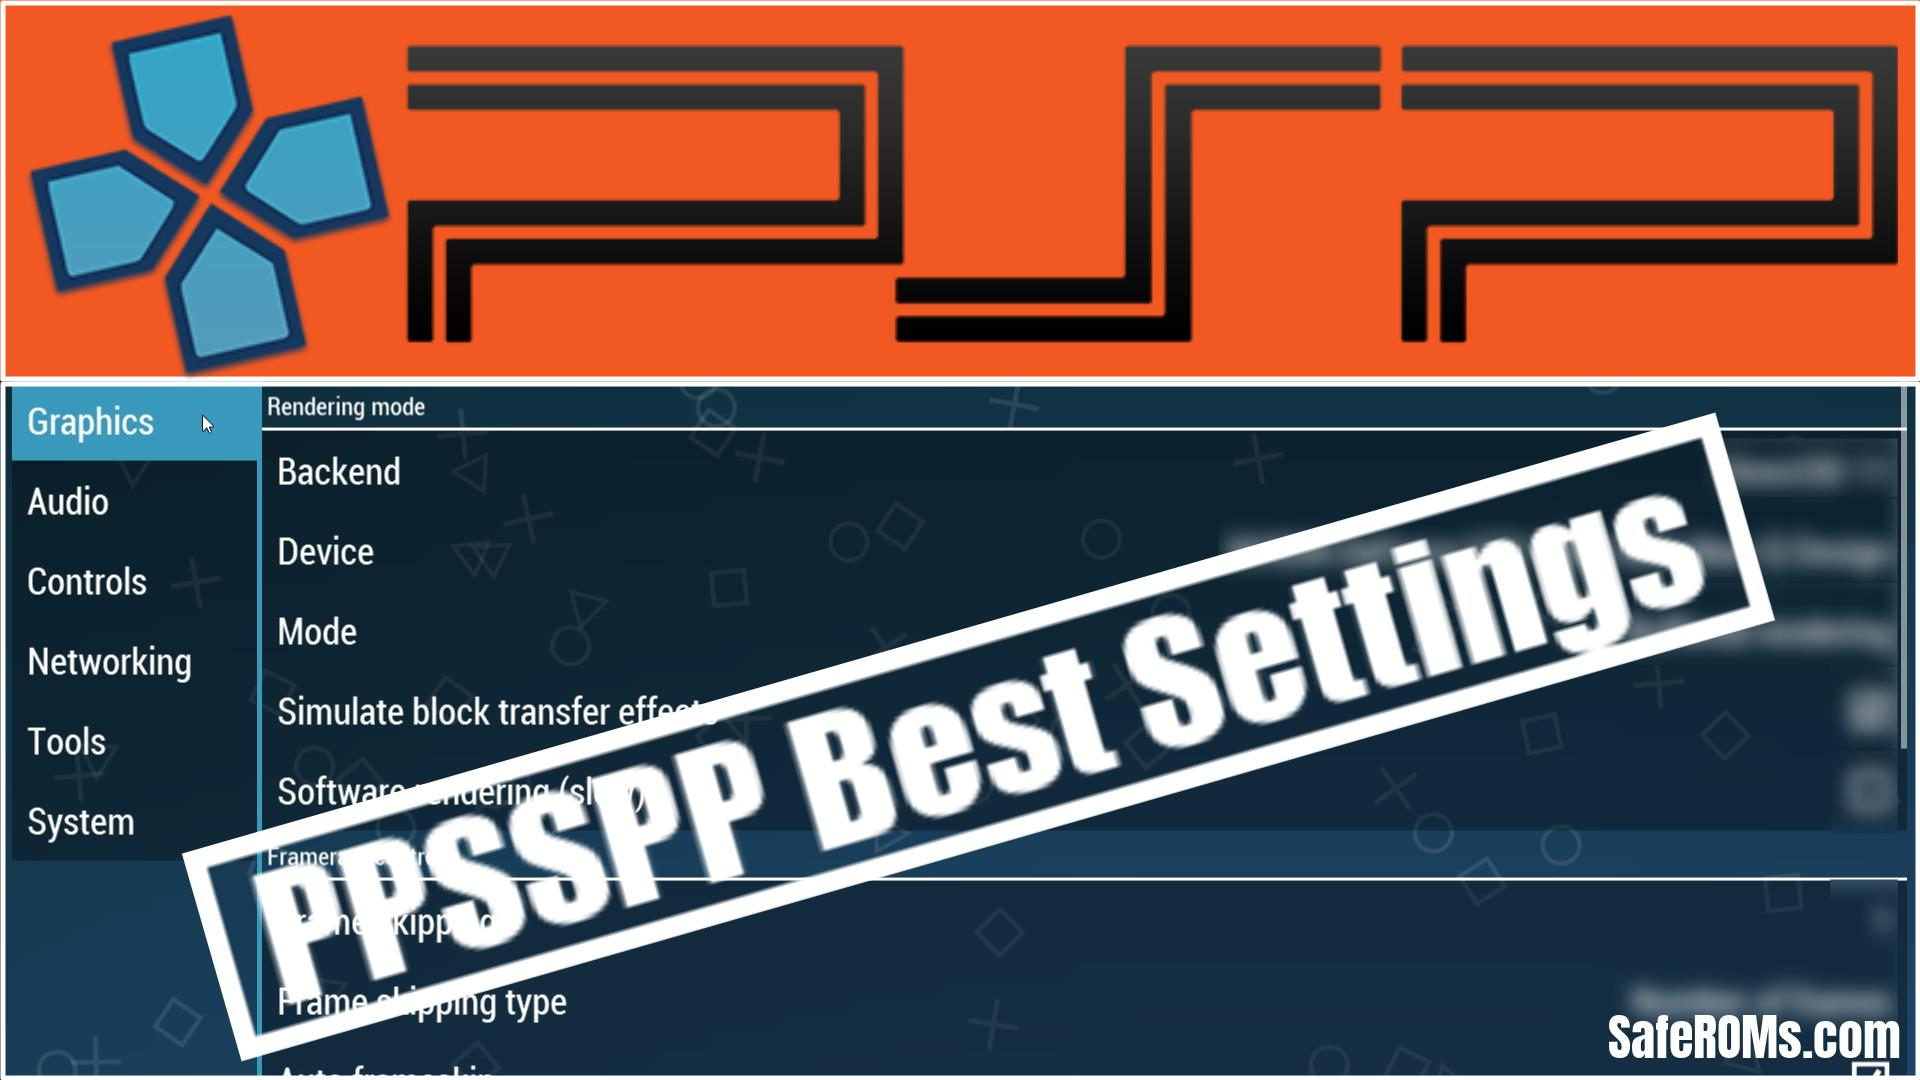 PPSSPP Best Settings PC